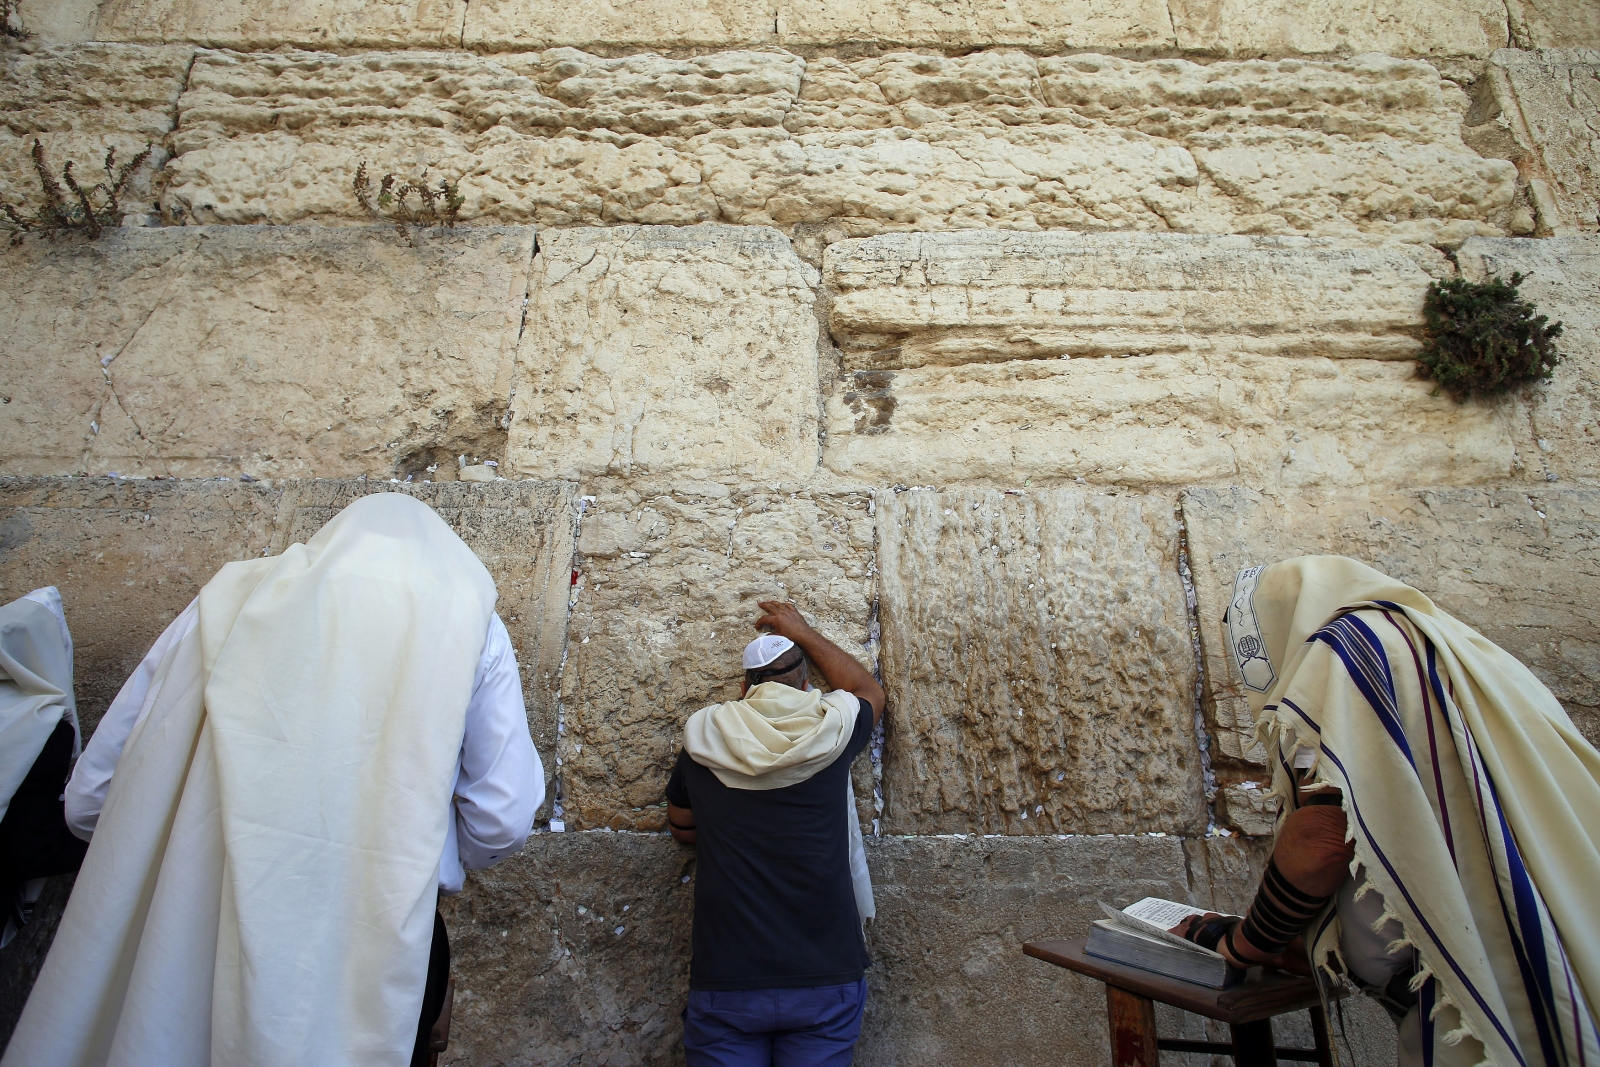 Jewish men pray at the Western Wall, Judaism's holiest prayer site, in Jerusalem's Old City September 17, 2014